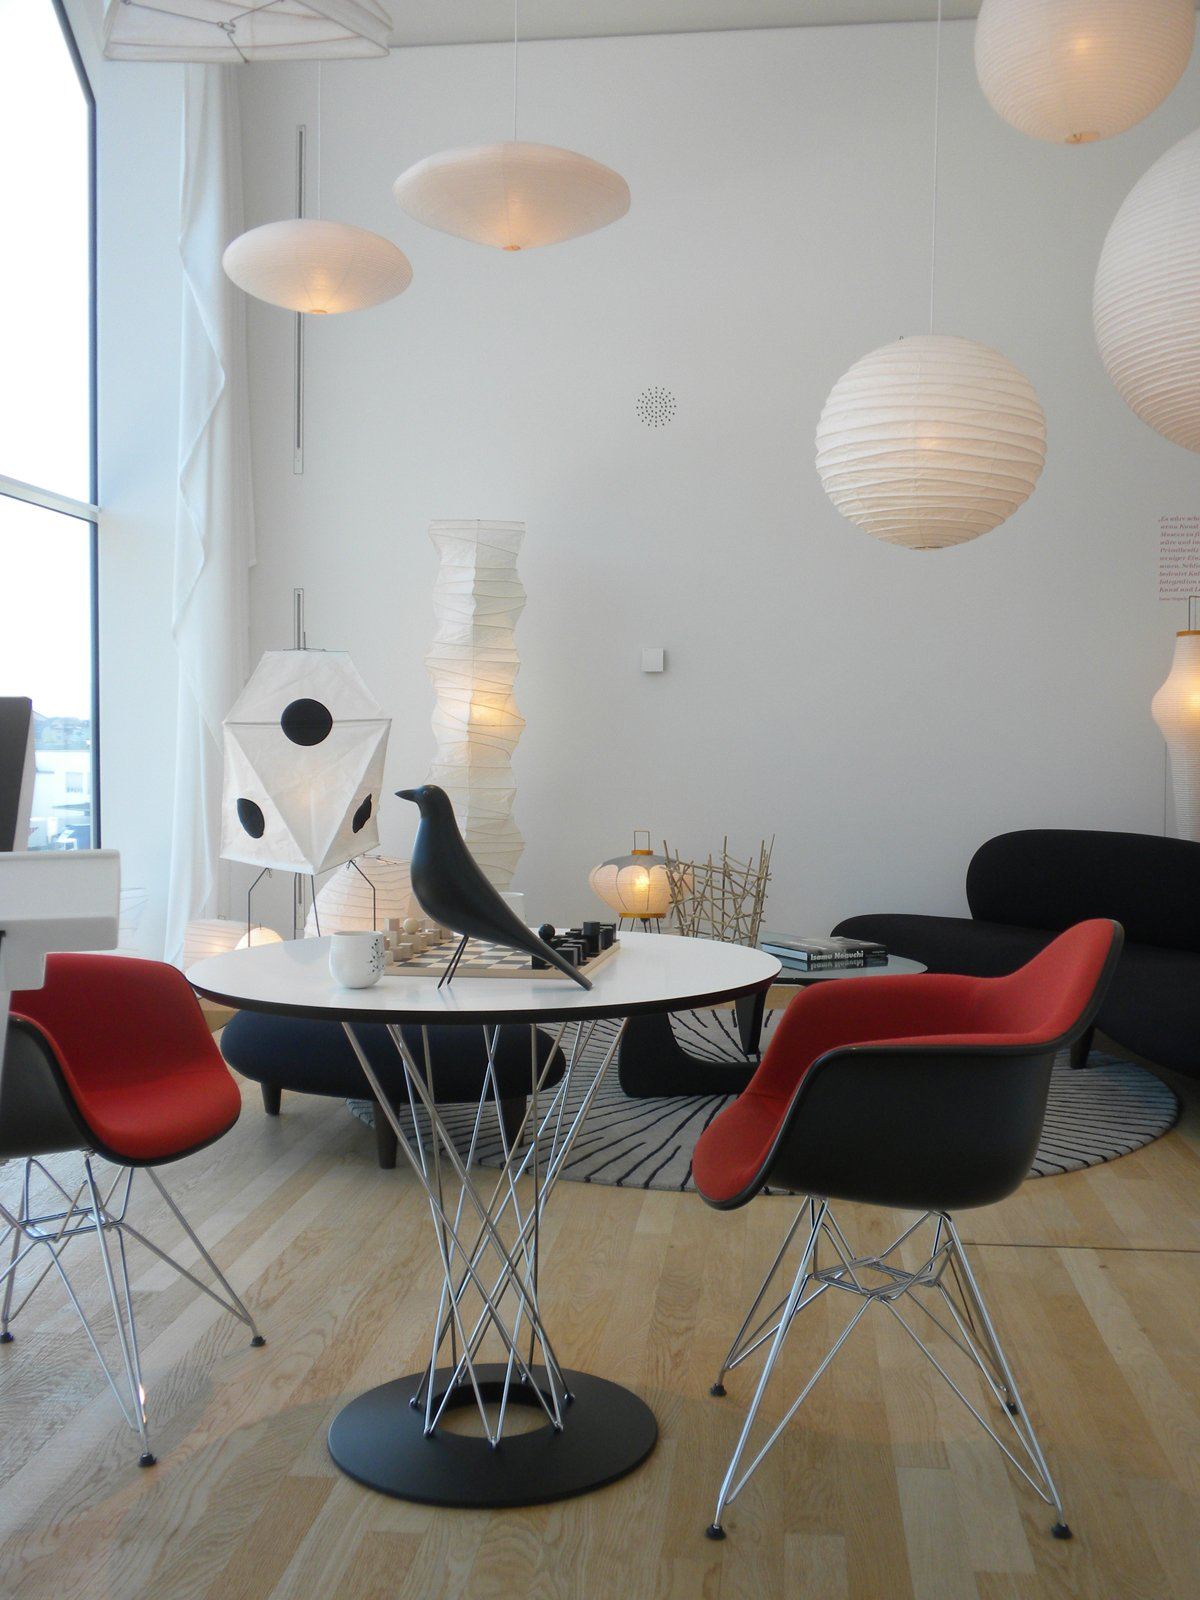 "This living room setting is devoted to Isamu Noguchi, with a hit of Eames in the DAR Eames Plastic Armchairs and Eames House Bird atop the Noguchi Dining Table. In the background are the Freeform Sofa and Ottoman, Noguchi Table, and assorted Akari lamps by the designer.  Search ""eames-house-blocks.html"" from Inside the VitraHaus"